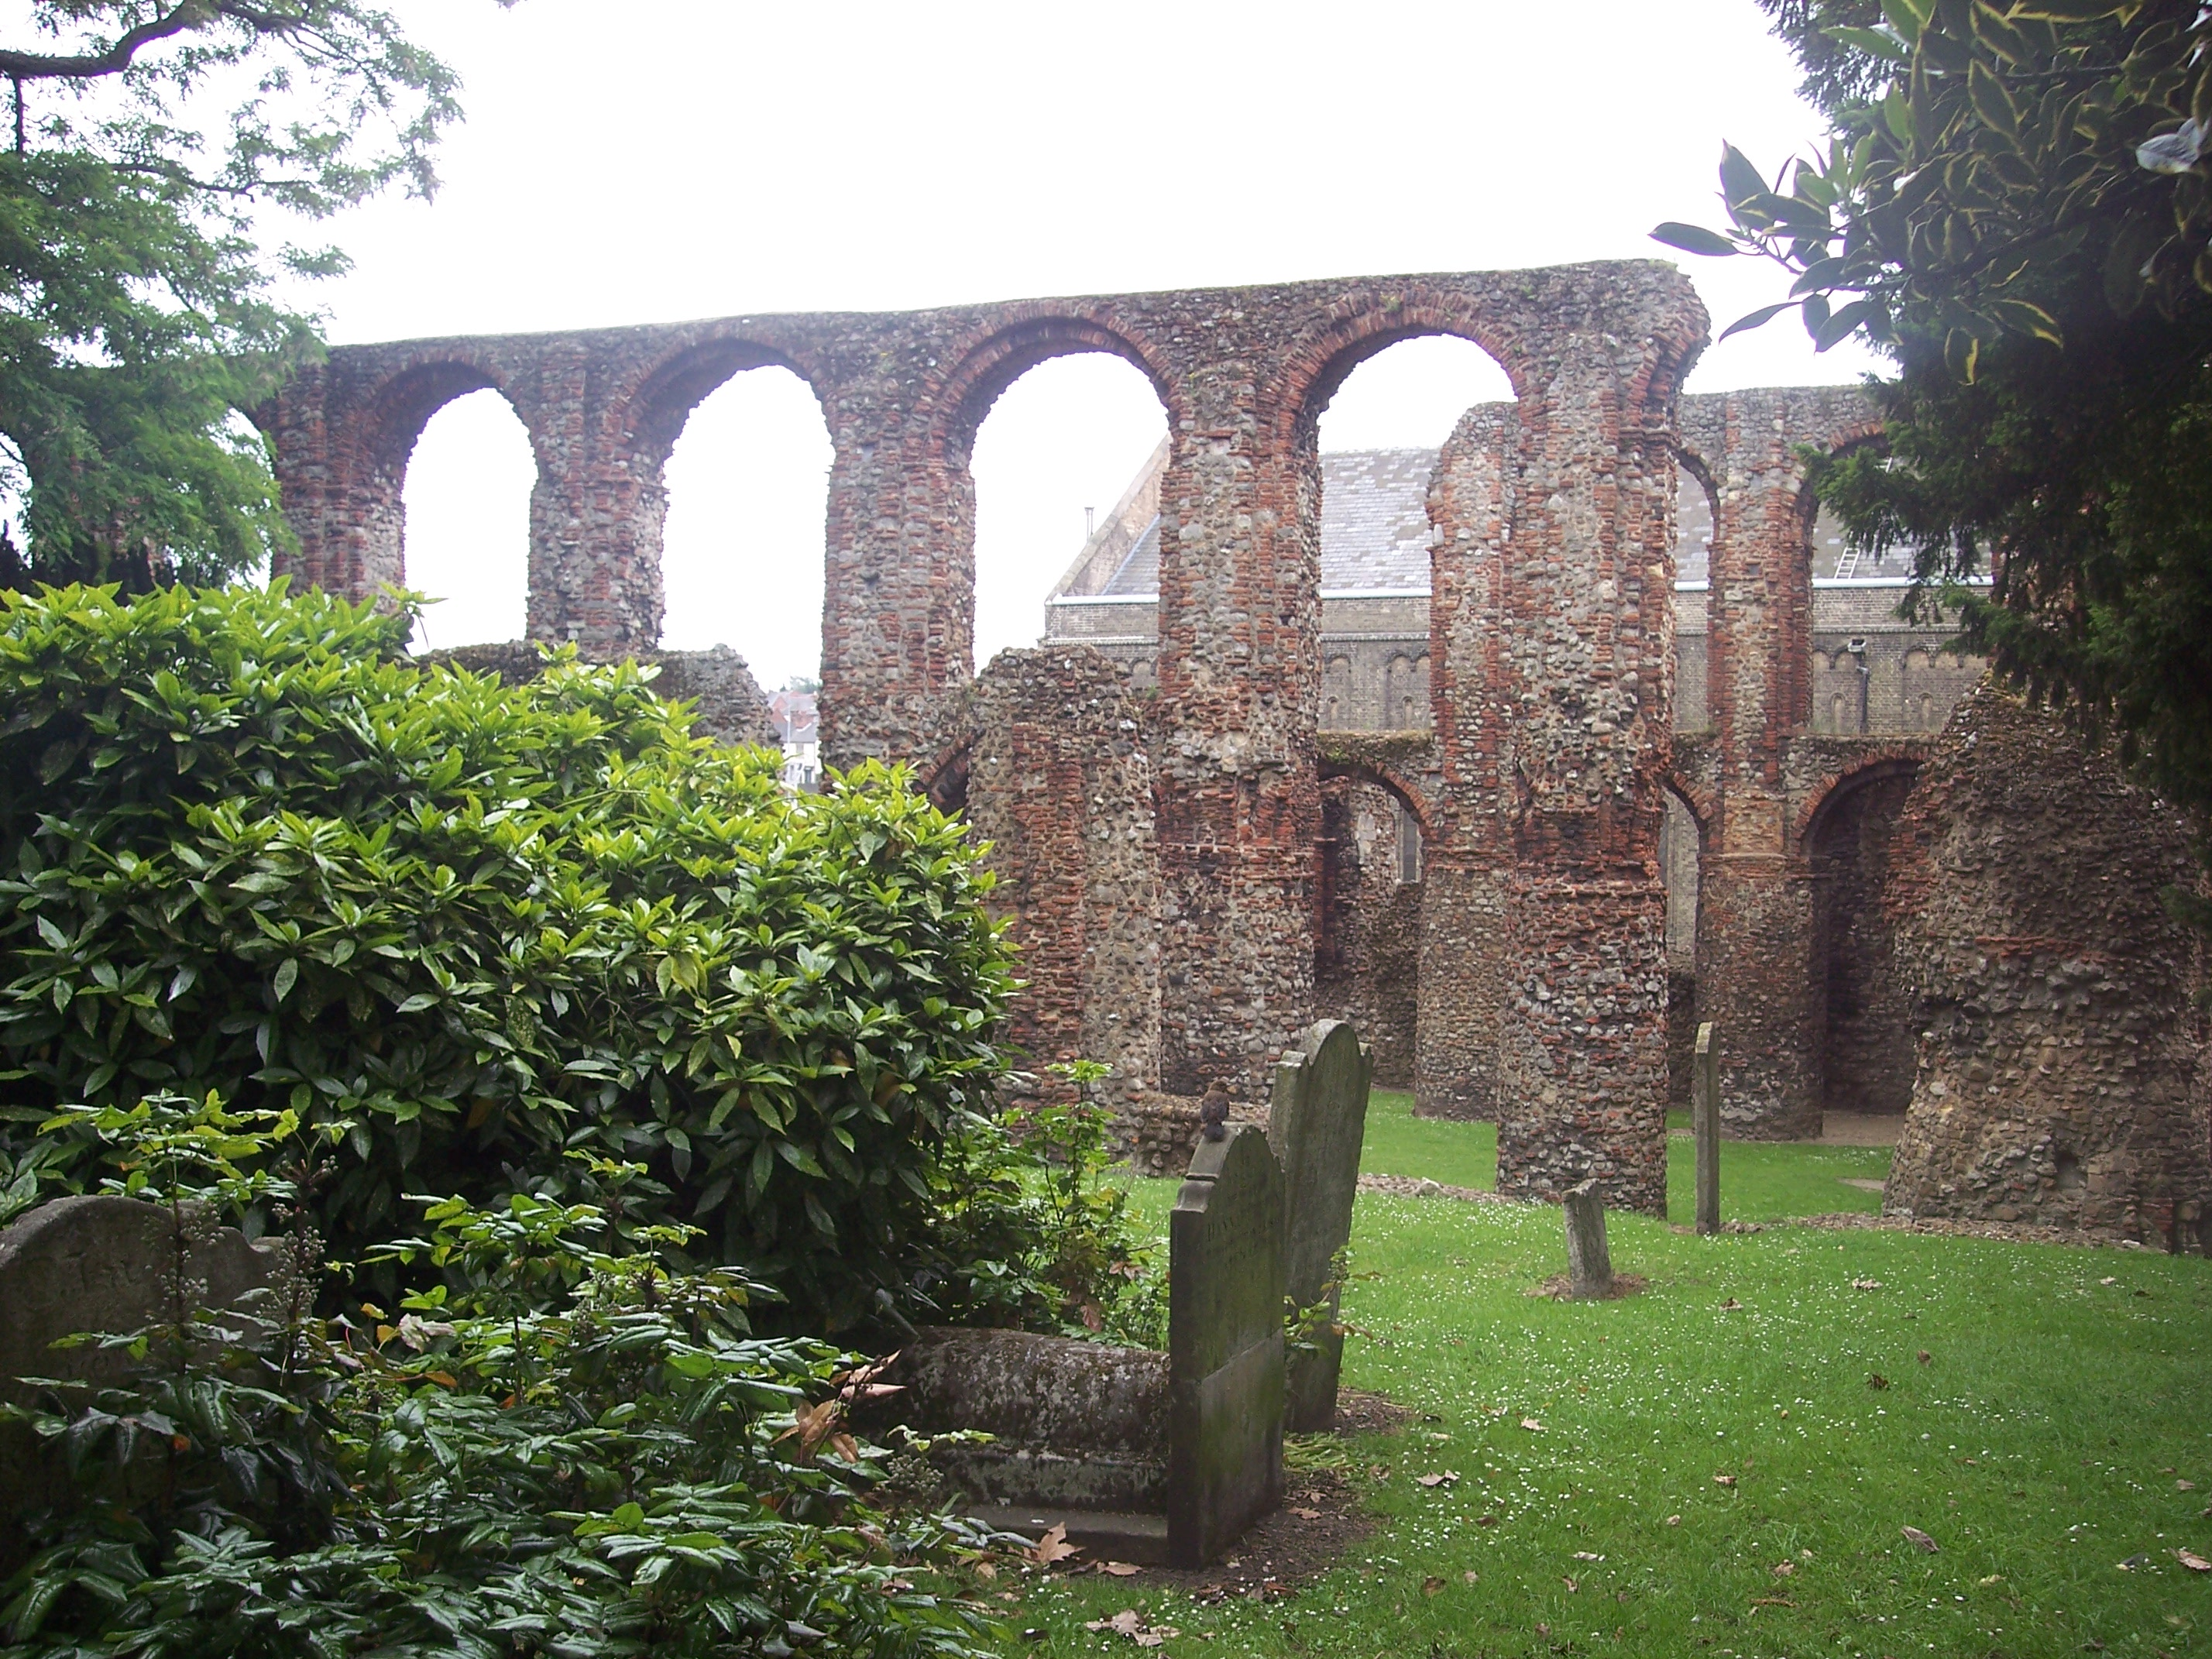 The remains of St Botolph's Priory Colchester, including the arched windows, sturdy circular piers run the length of the nave, and the arcading above is typically Norman. The was built mainly from flint and re-used Roman bricks, this masonry then being completely covered with plaster and possibly pa...